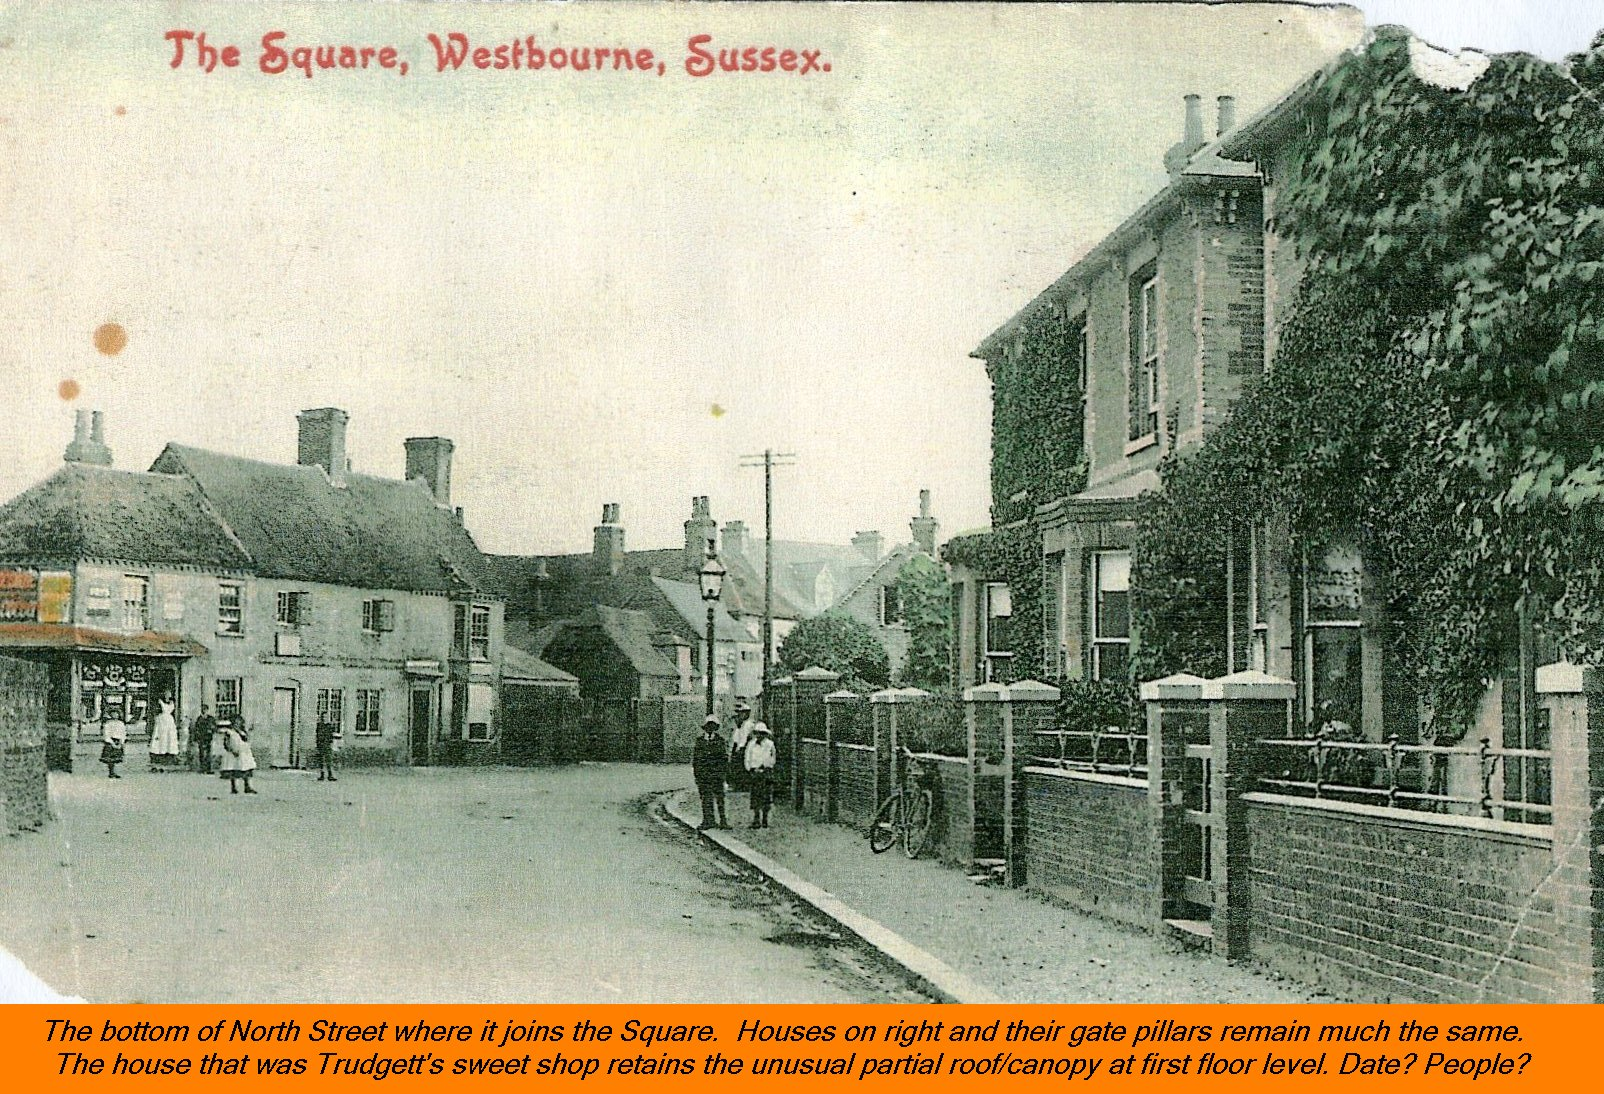 WESTBOURNE HISTORY PHOTO, SQUARE, NORTH STREET, TRUDGETT, SWEET SHOP